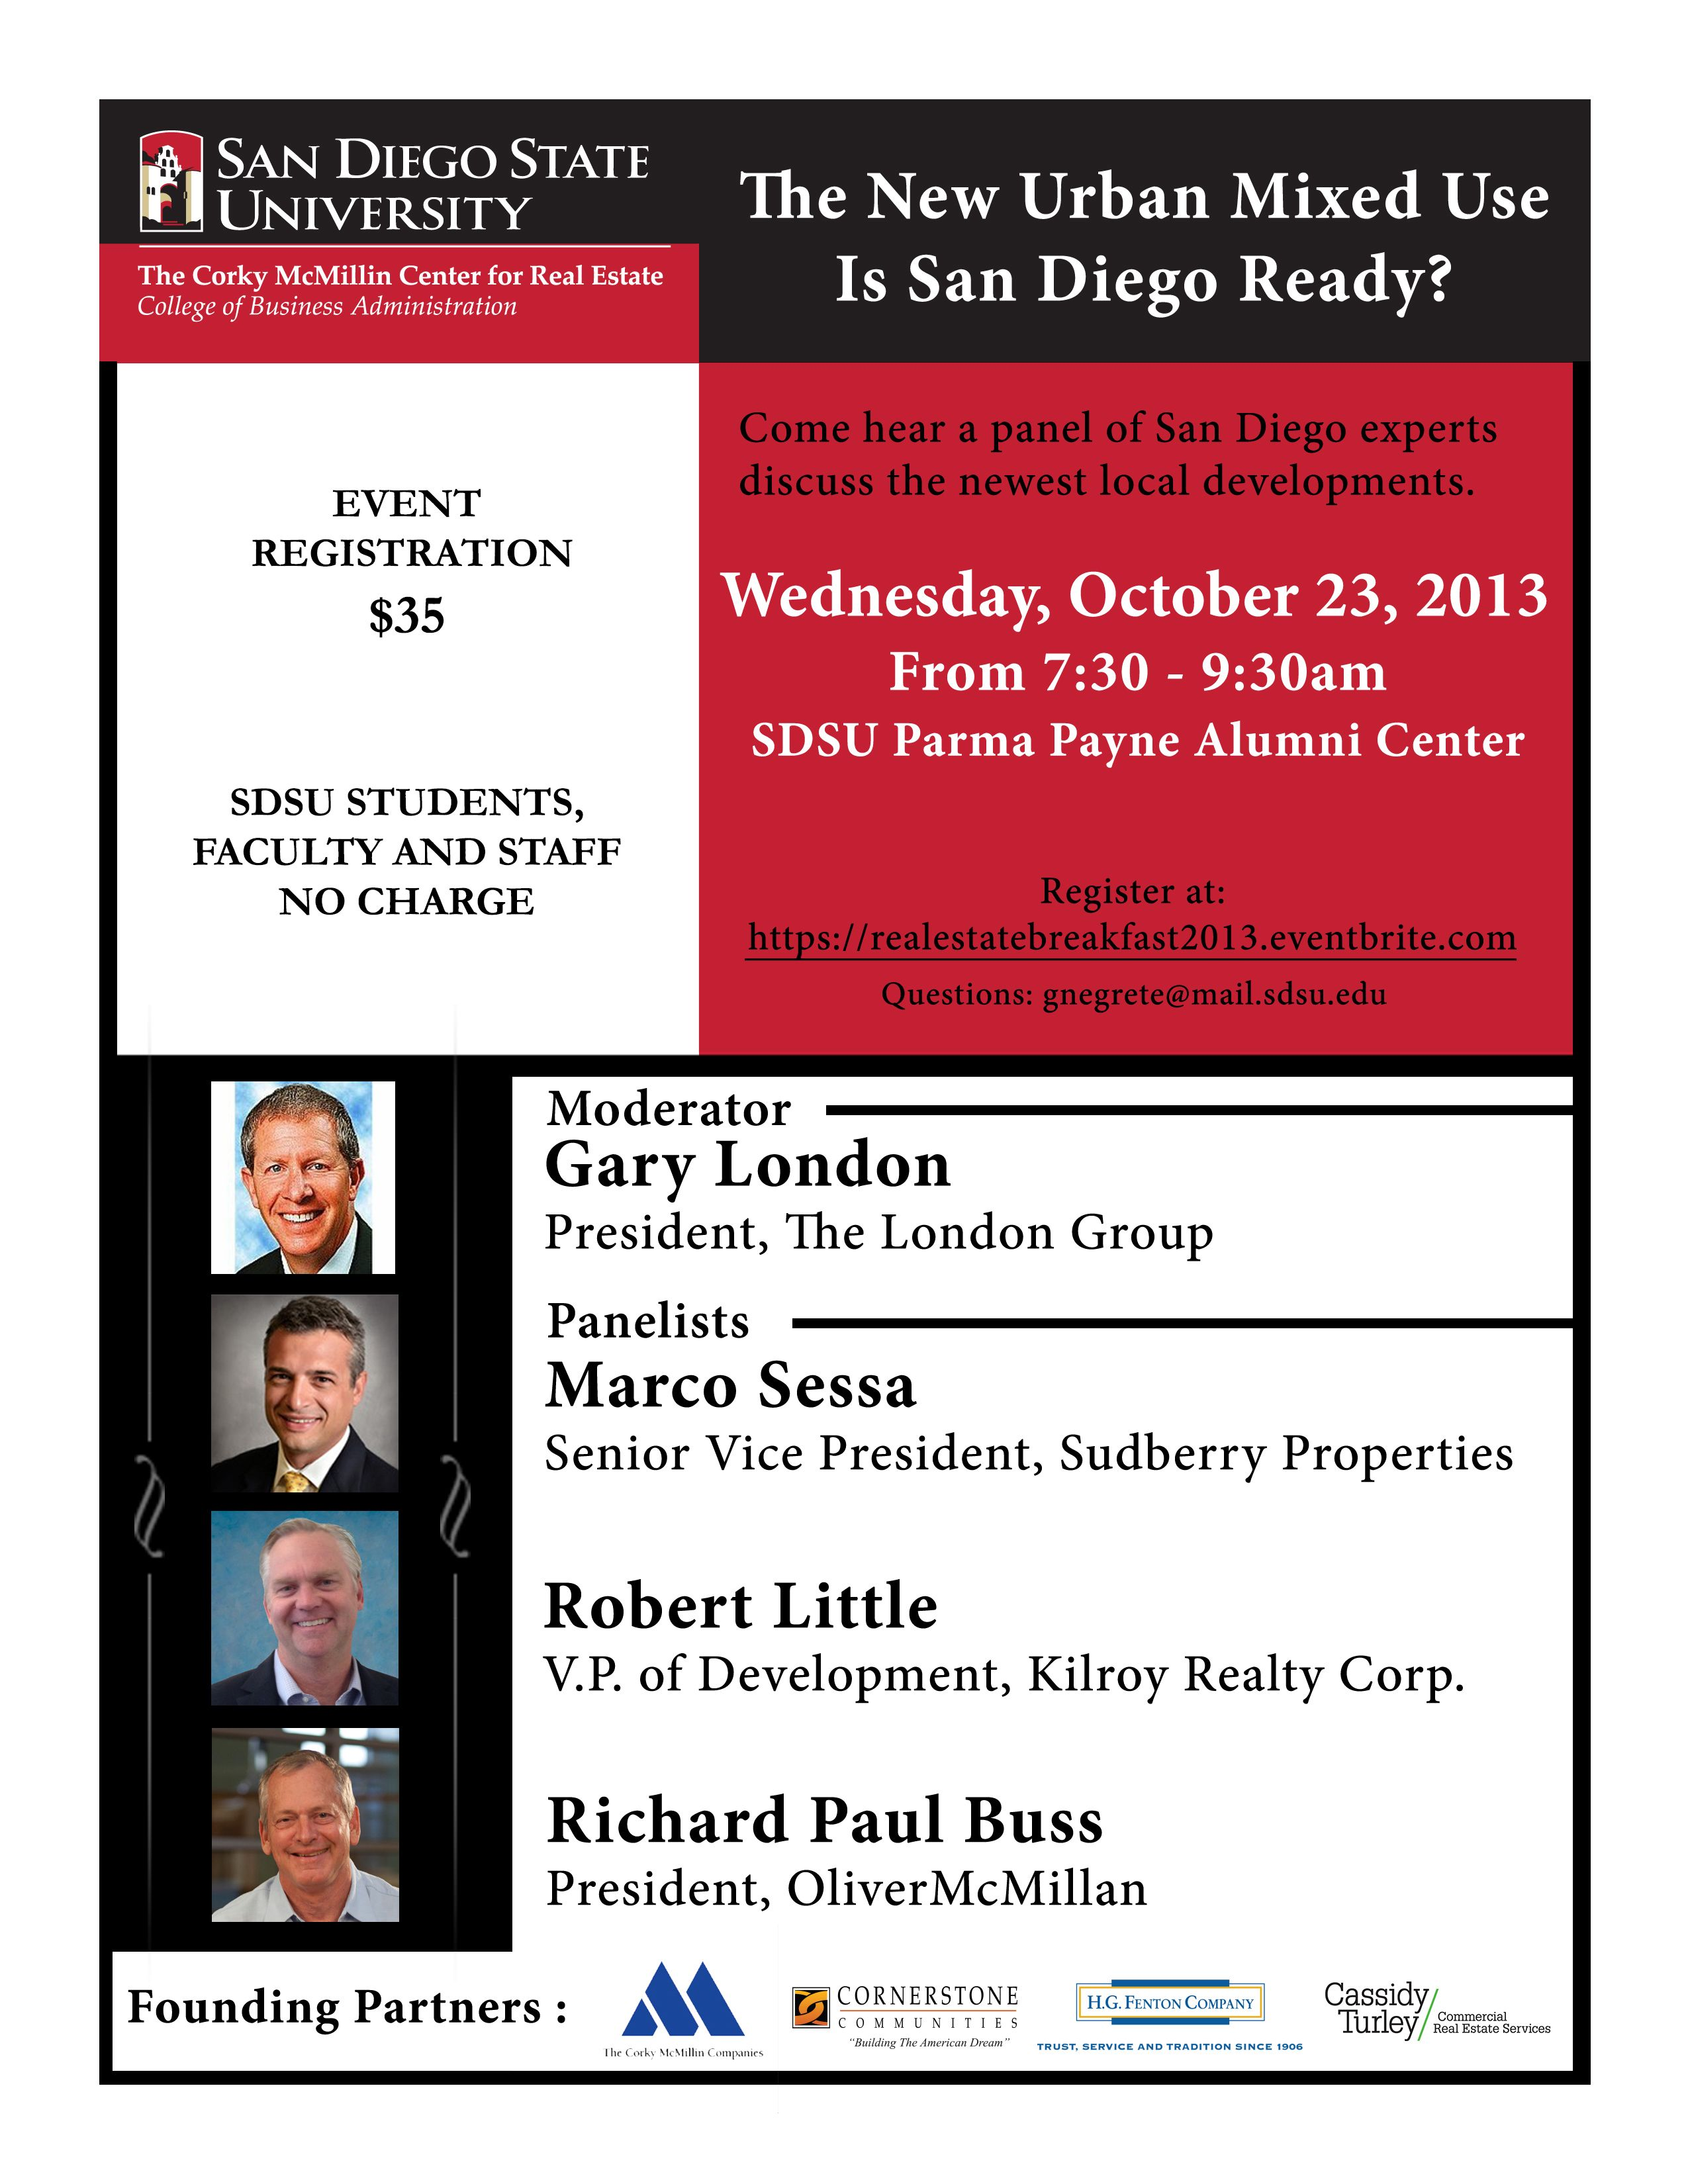 "Don't forget to register for The Corky McMillin Center for Real Estate's Oct. 23rd Real Estate Breakfast, ""The New Urban Mixed Use"" from 7:30-9:30am. Come hear a panel of San Diego experts discuss the newest local developments.  See you there!  Register at: https://realestatebreakfast2013.eventbrite.com/"